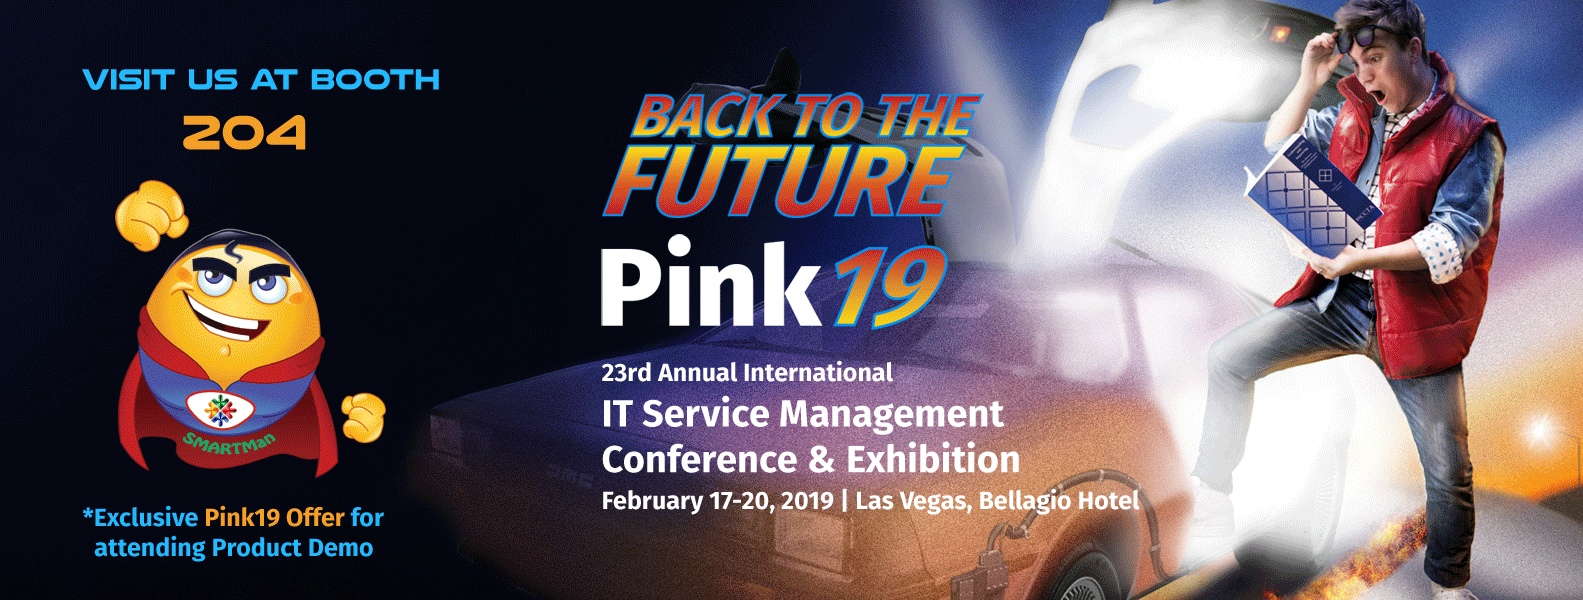 SMART Service Desk is a proud Super Silver Sponsor of Pink 19